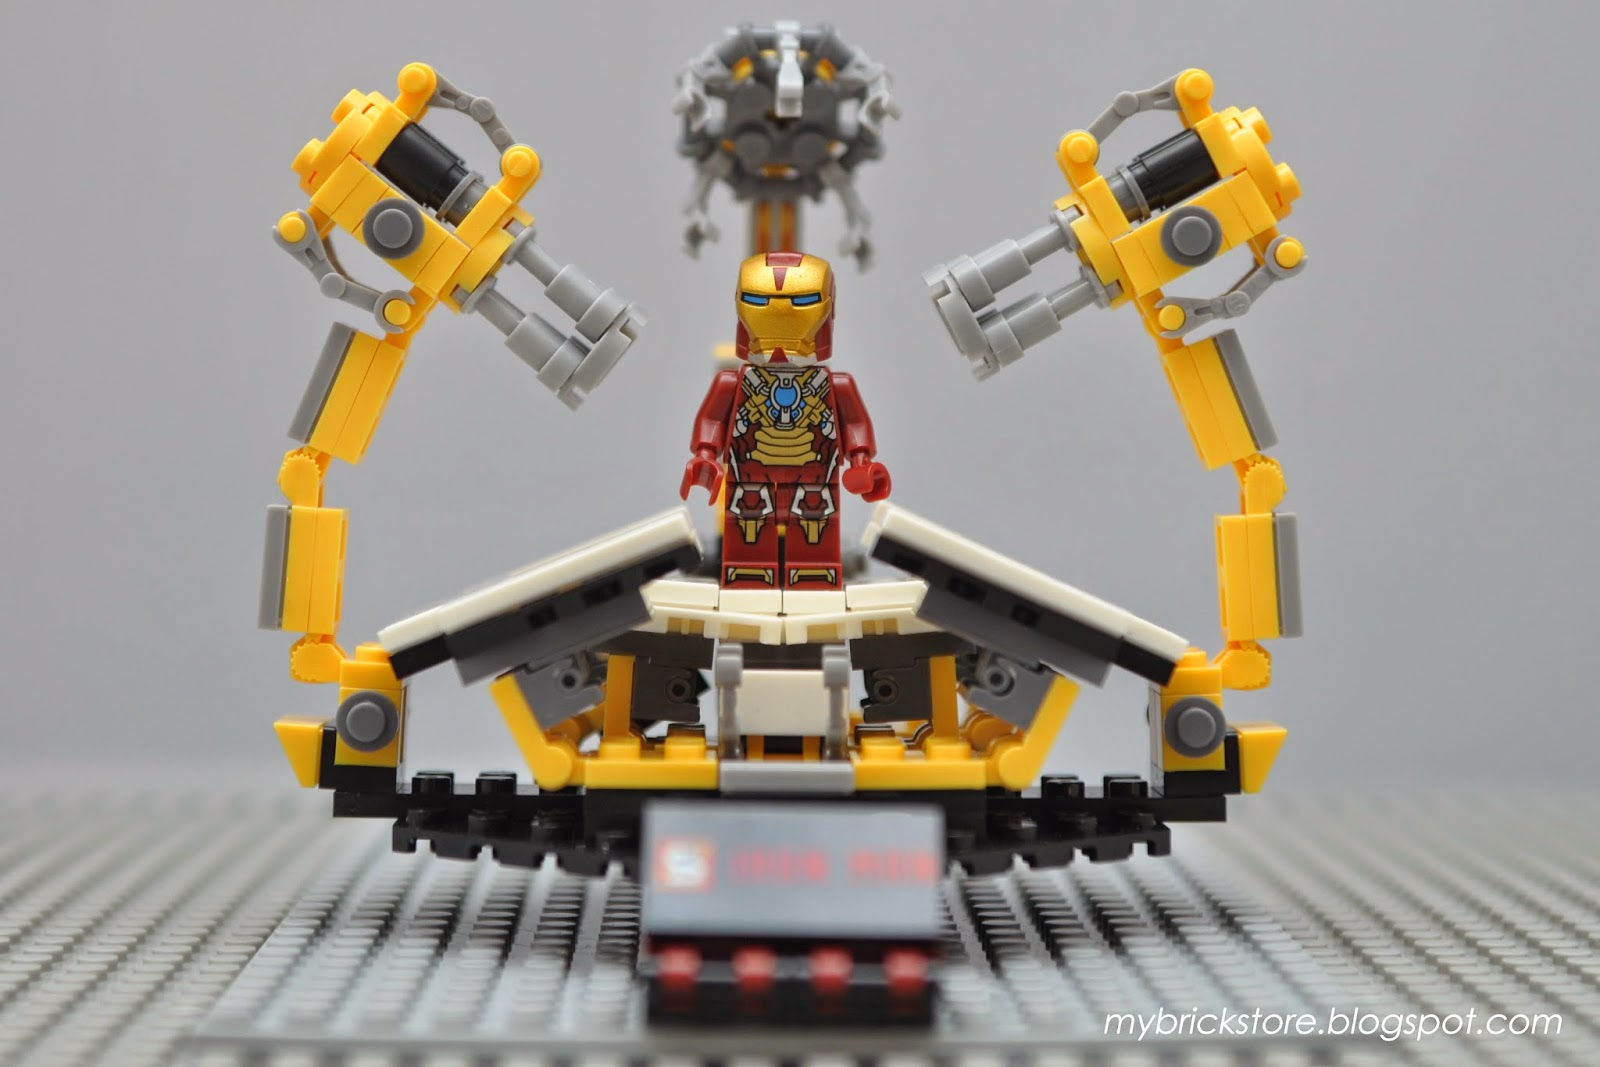 My Brick Store: Lego Iron Man Gantry - SY304 by Sheng Yuan